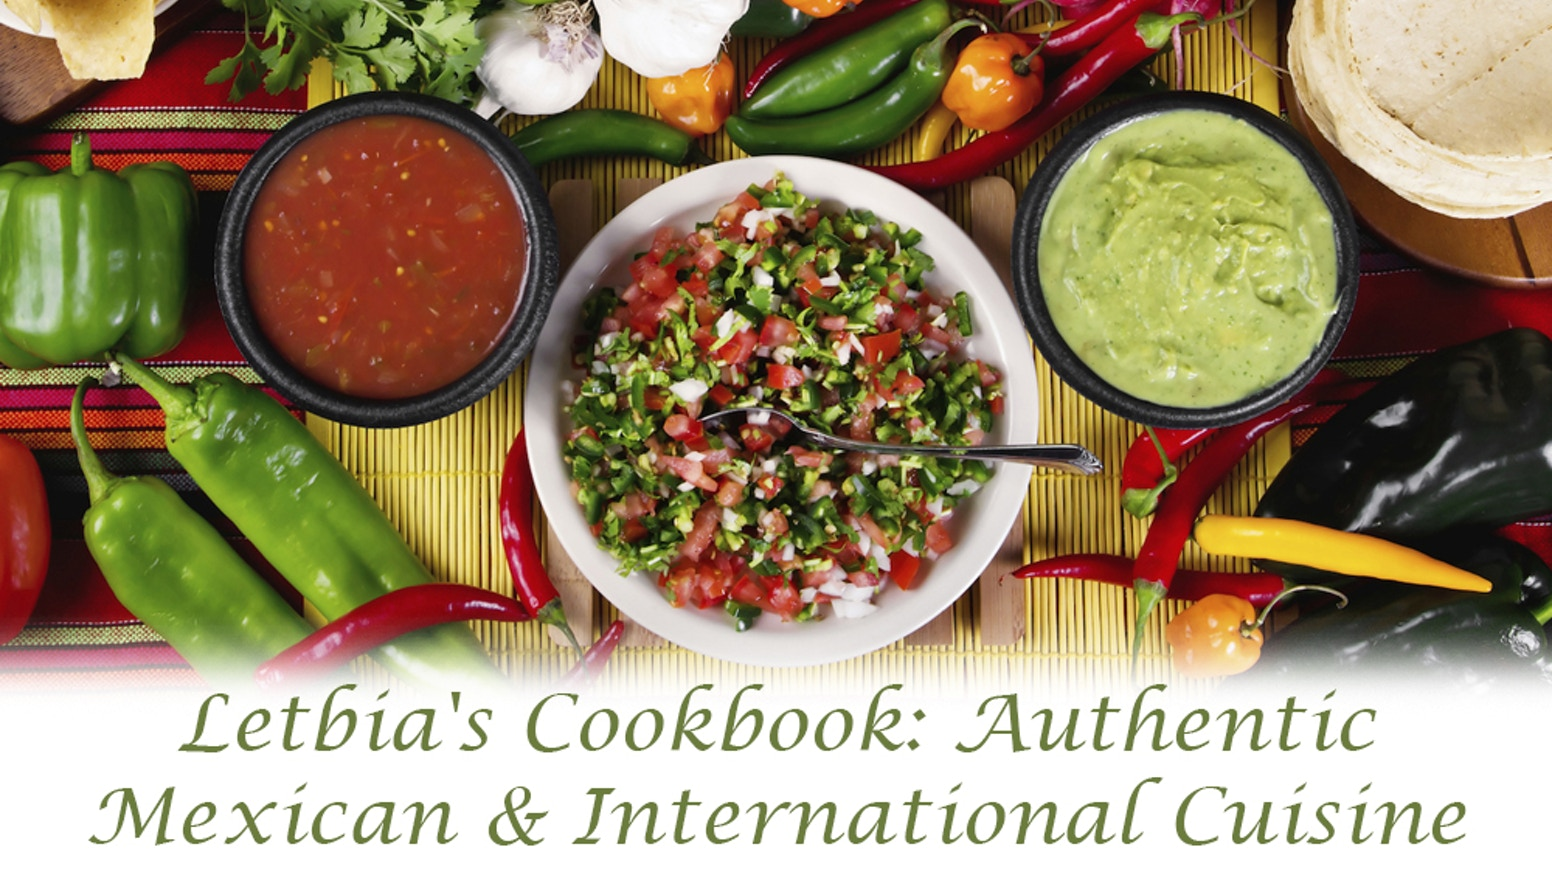 Letbias cookbook authentic mexican international cuisine by letbias cookbook authentic mexican international cuisine forumfinder Gallery